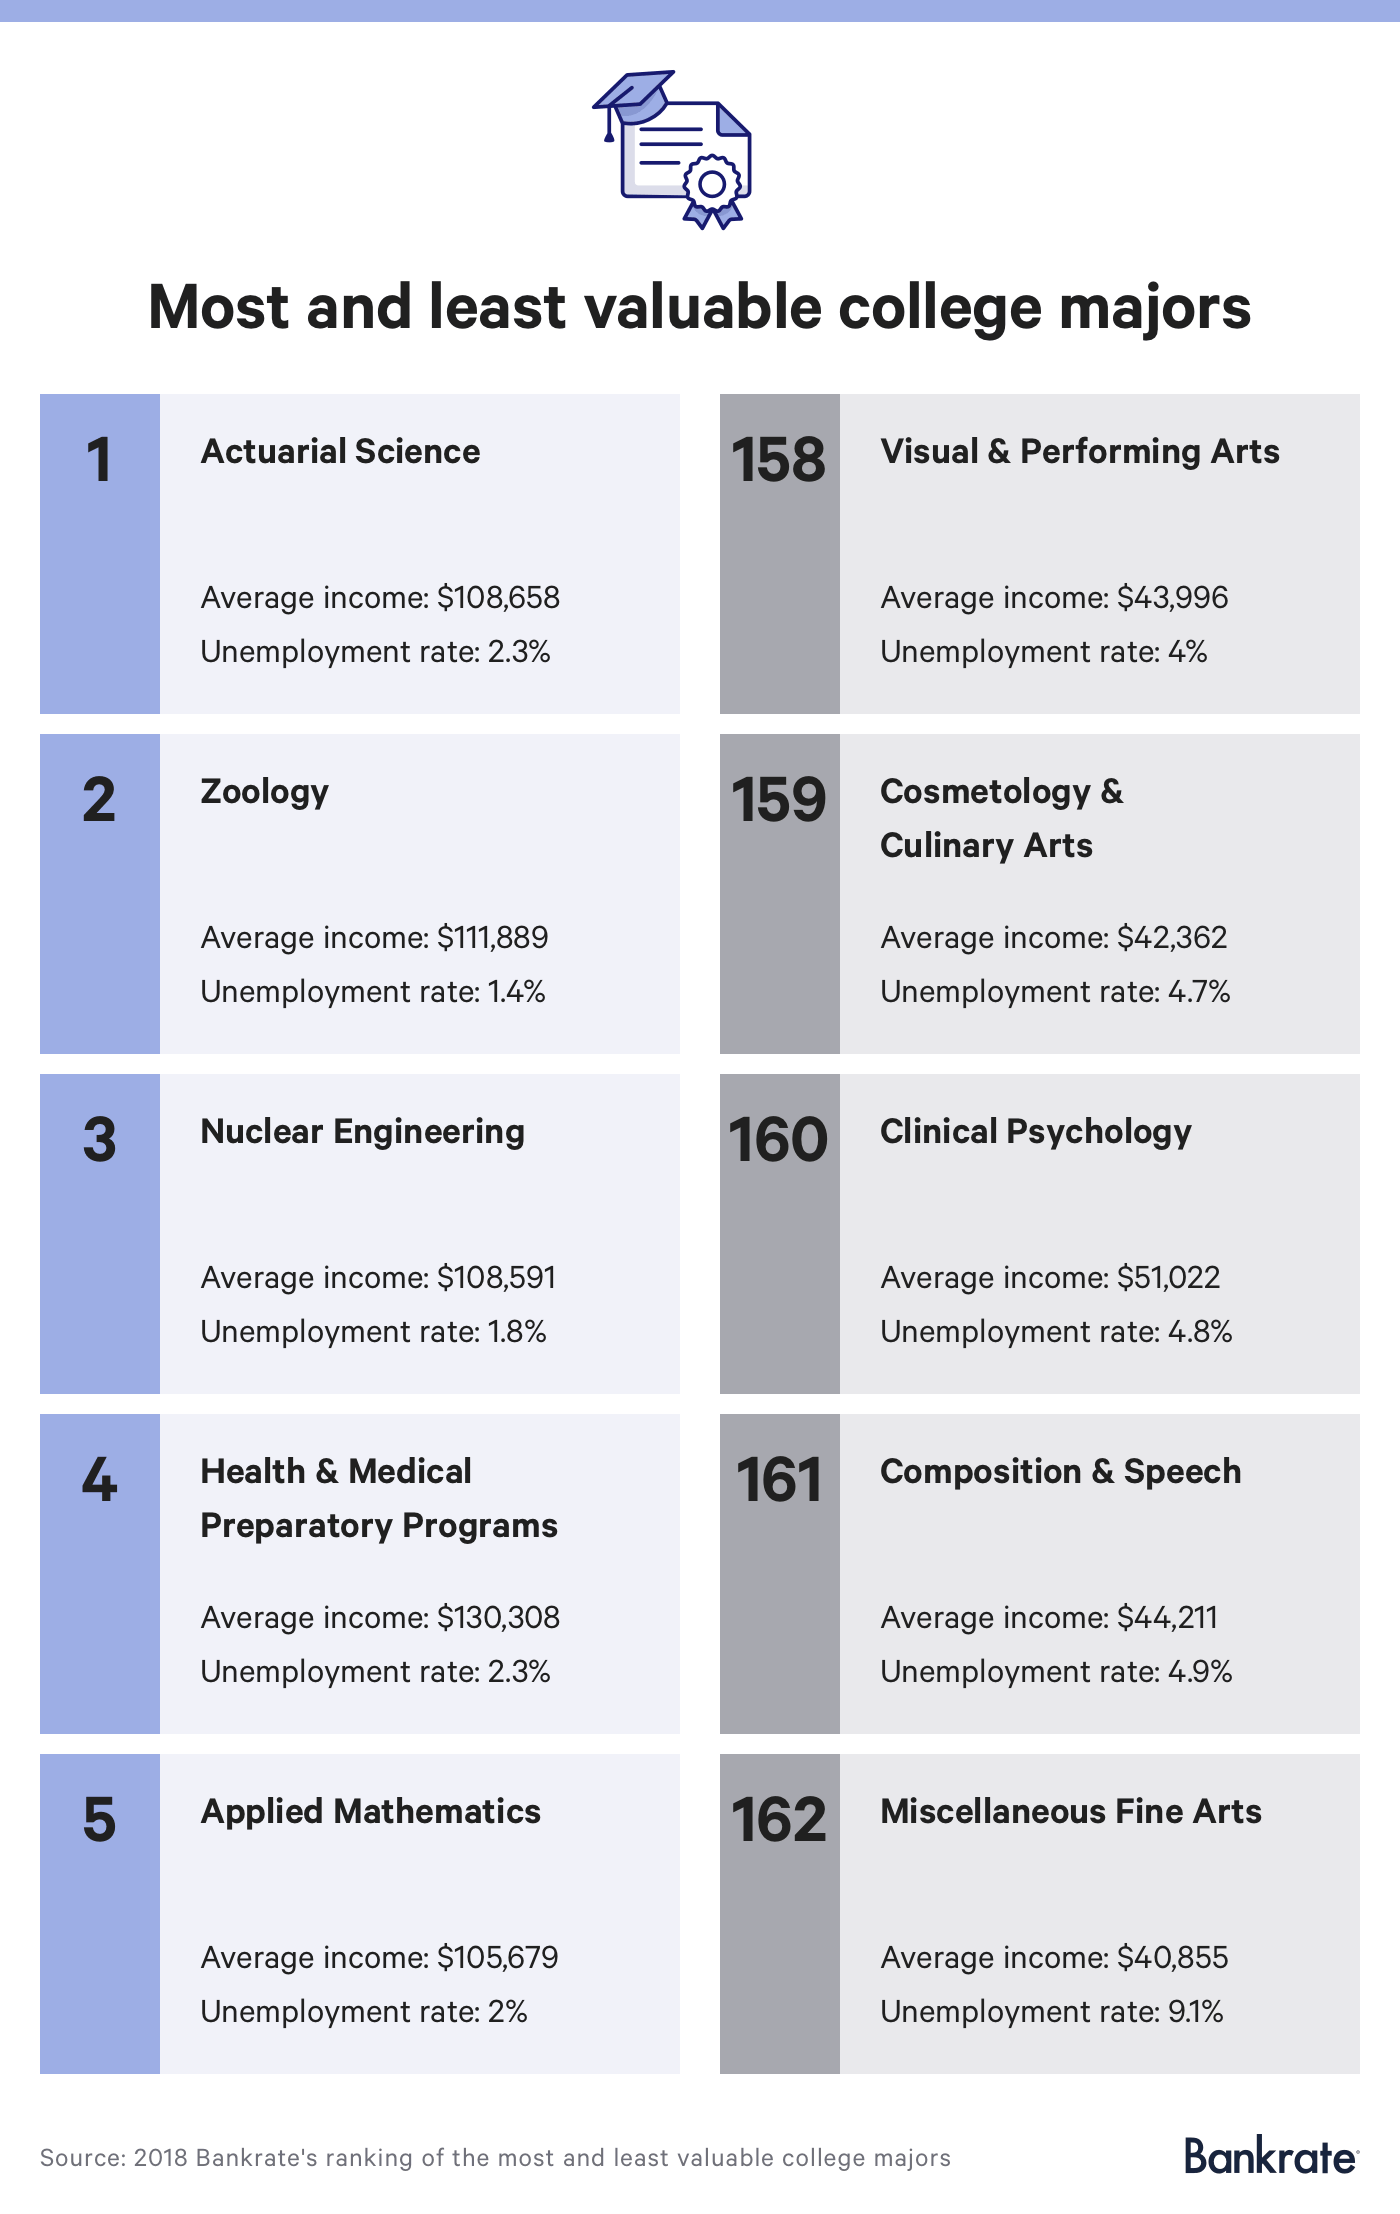 Top 5 most and least valuable college majors`